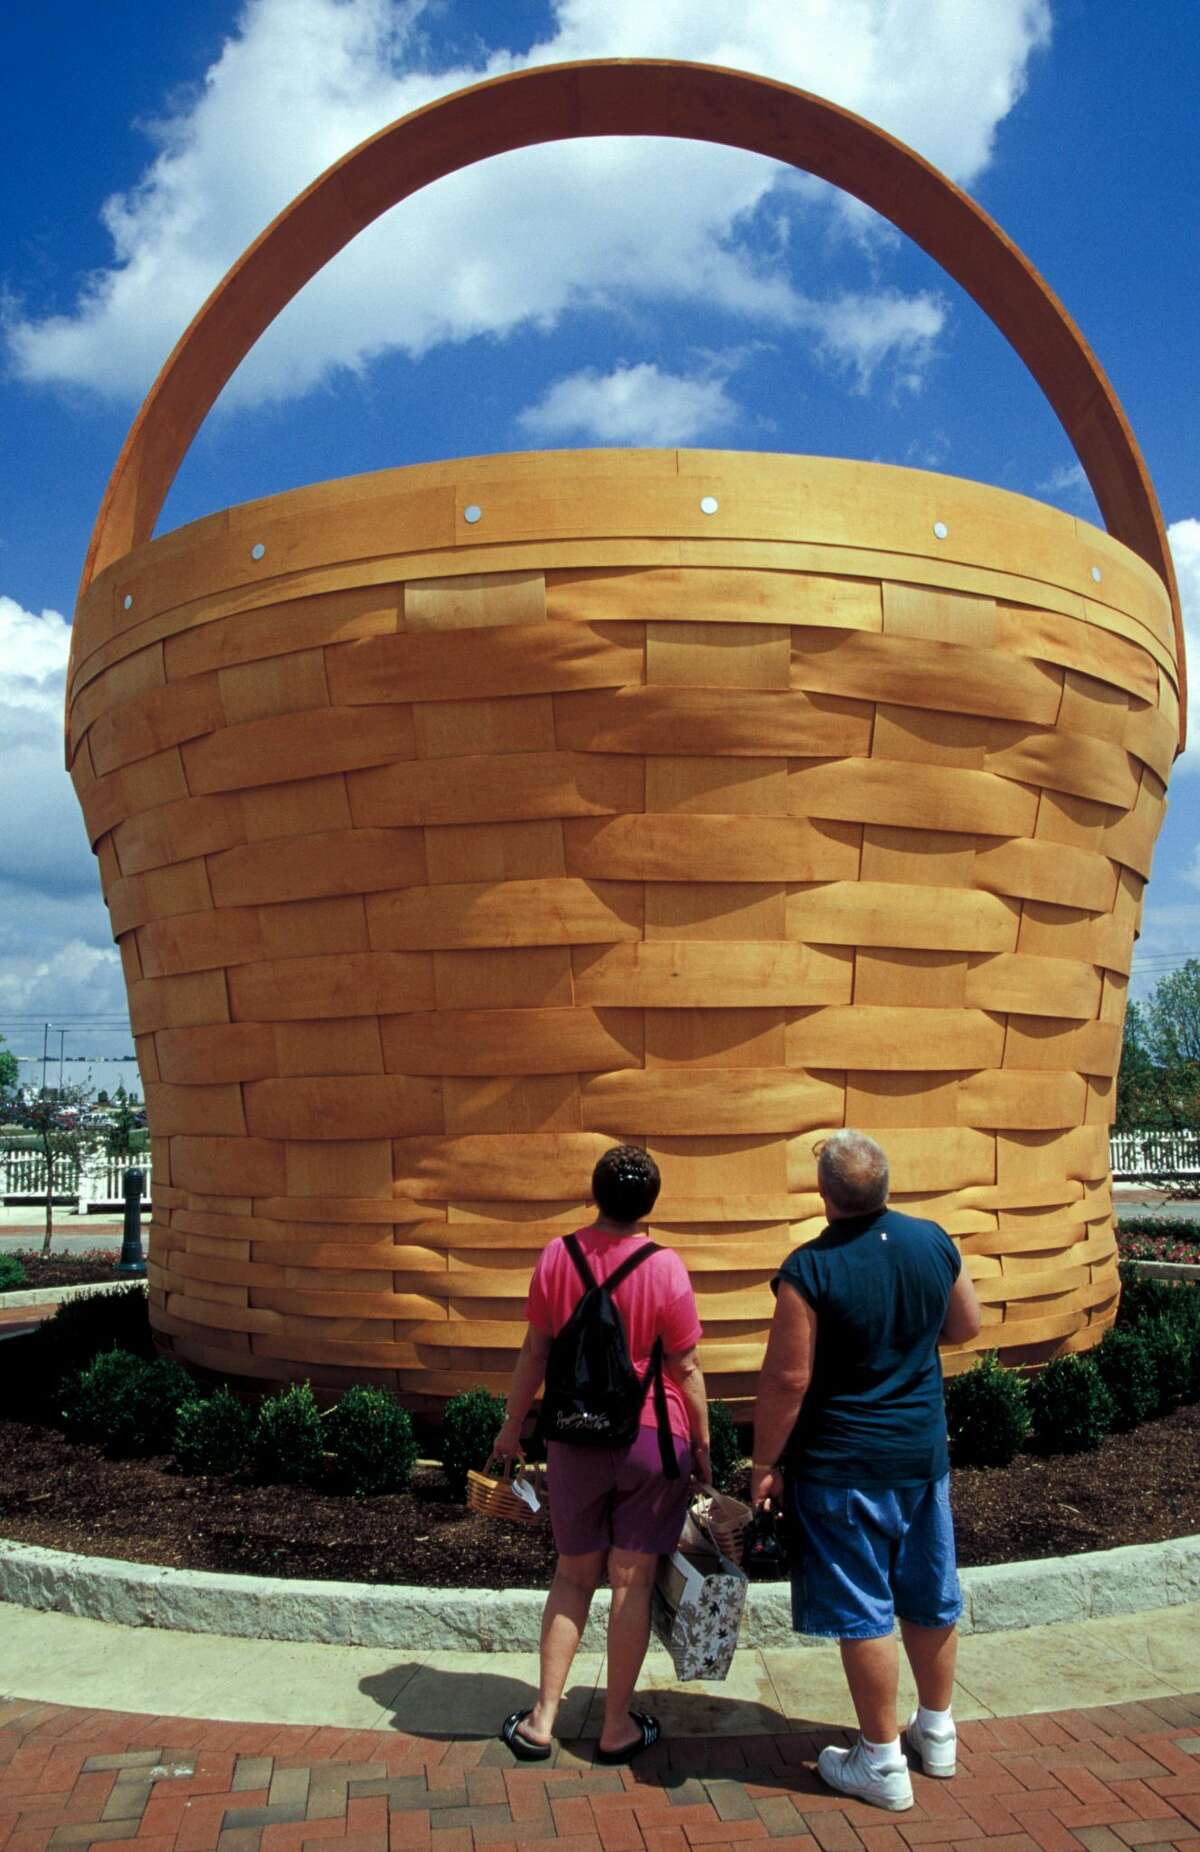 The 20-foot-high Longaberger Homestead in Frazeysburg, Ohio, offers shopping, dining and the opportunity to try basket weaving. (Photo by: Jeff Greenberg/UIG via Getty Images)